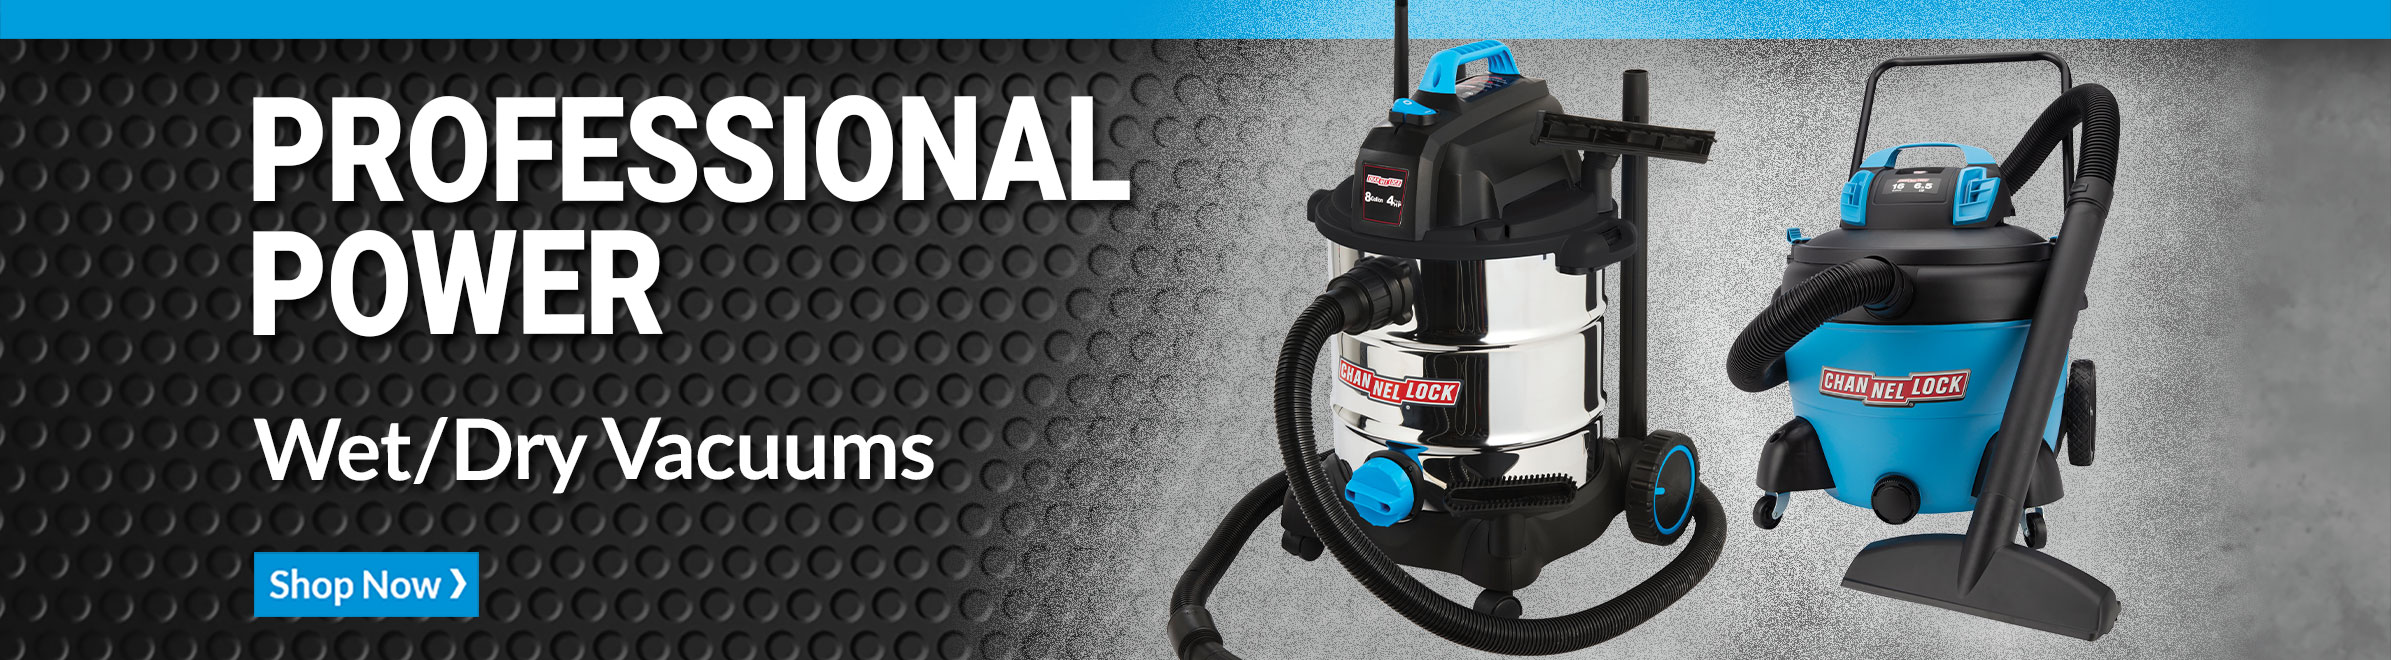 Professional power. Wet/dry vacuums. Shop Now